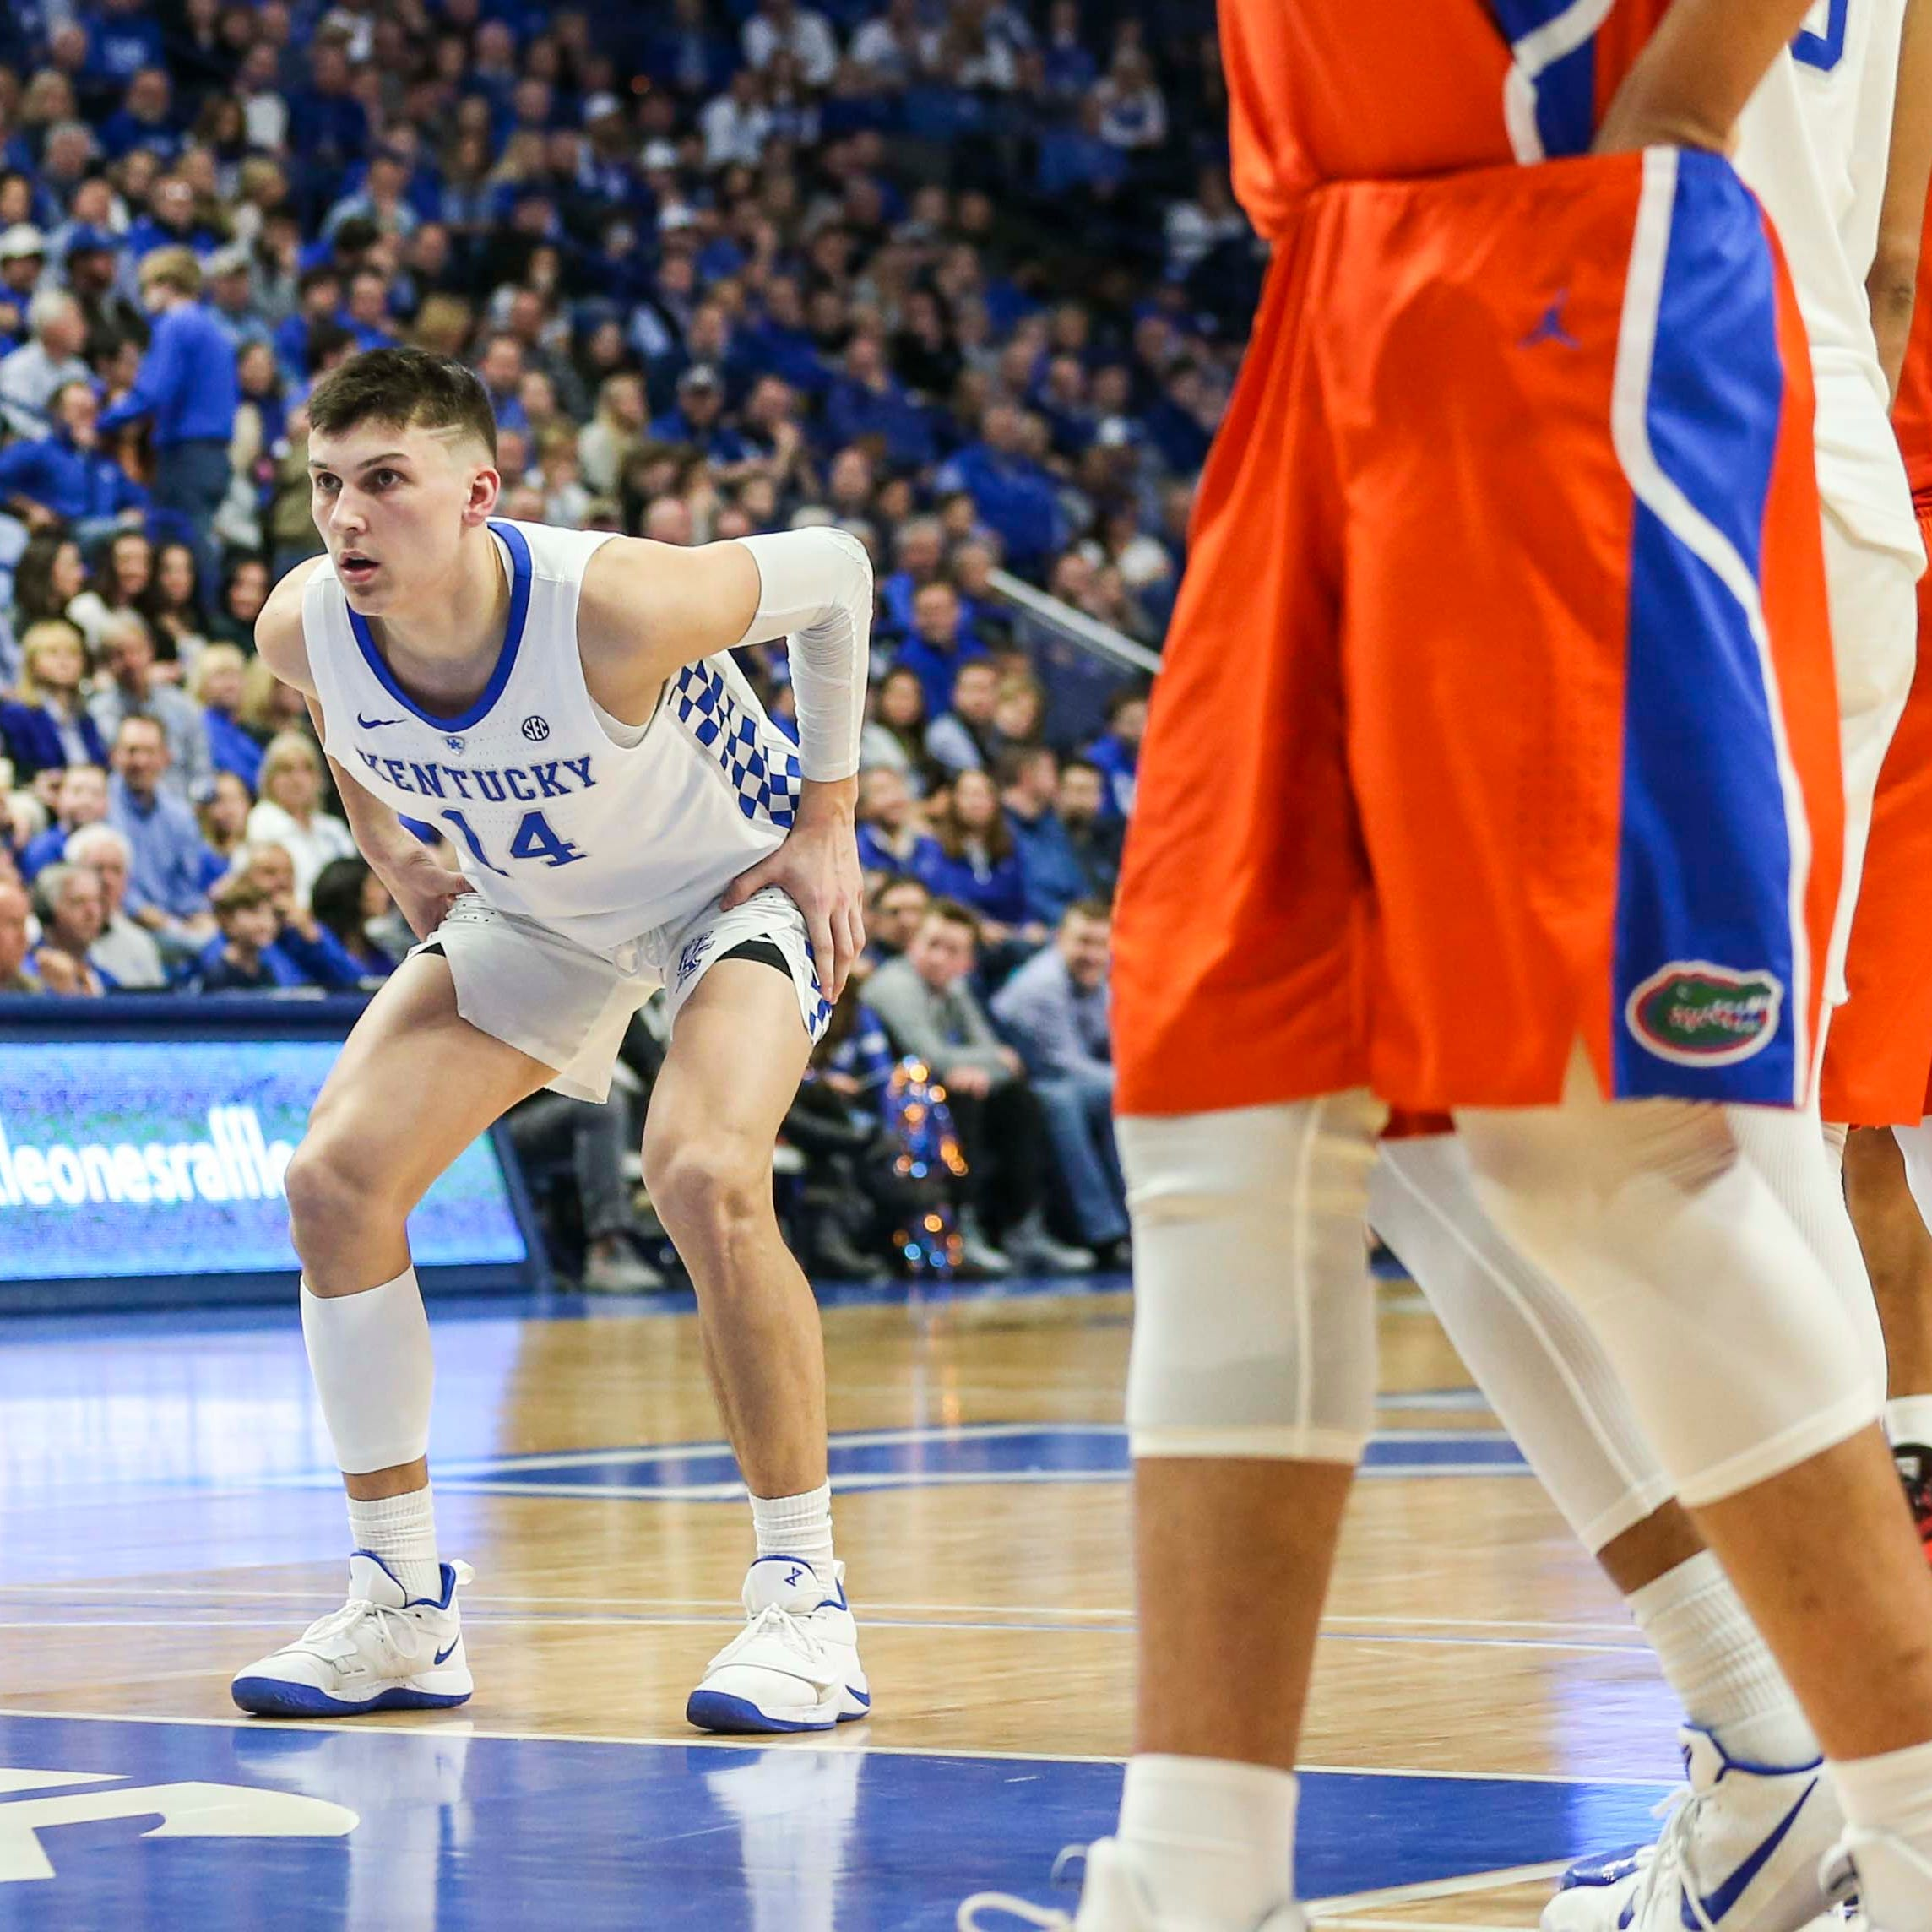 Kentucky basketball legends welcome Tyler Herro to exclusive club